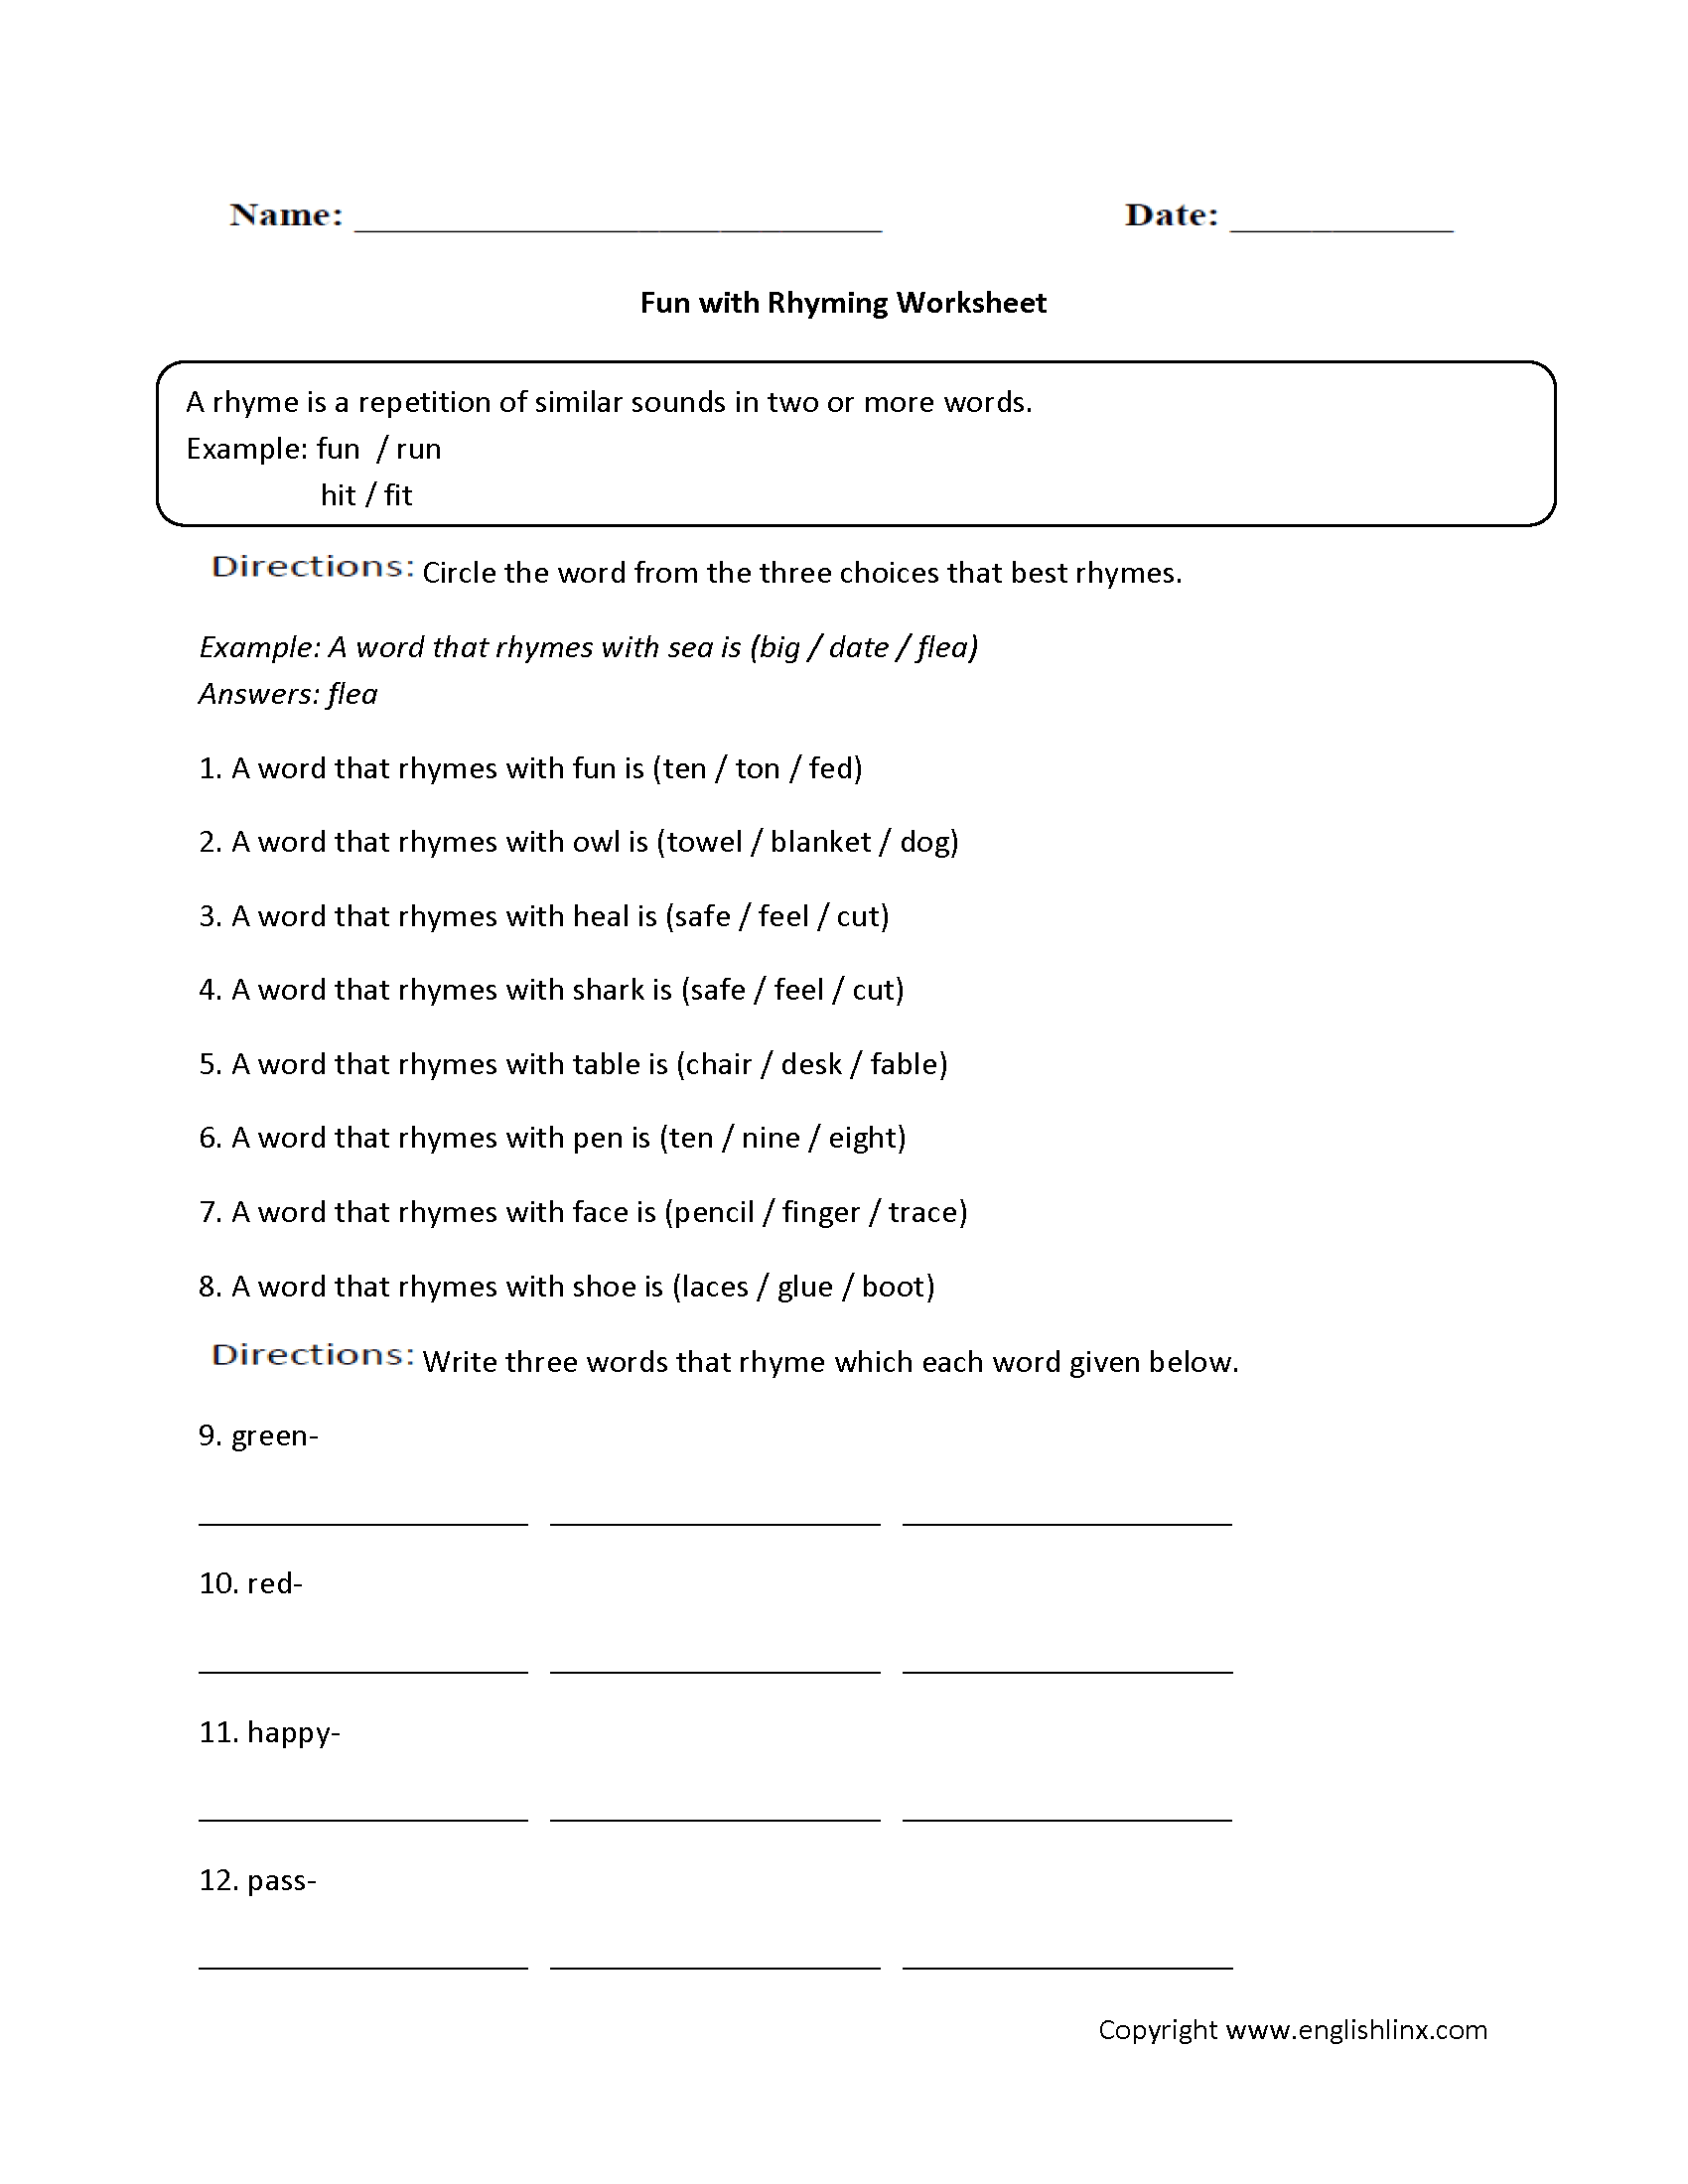 Worksheet Worksheet On Rhyming Words englishlinx com rhyming worksheets fun with worksheet